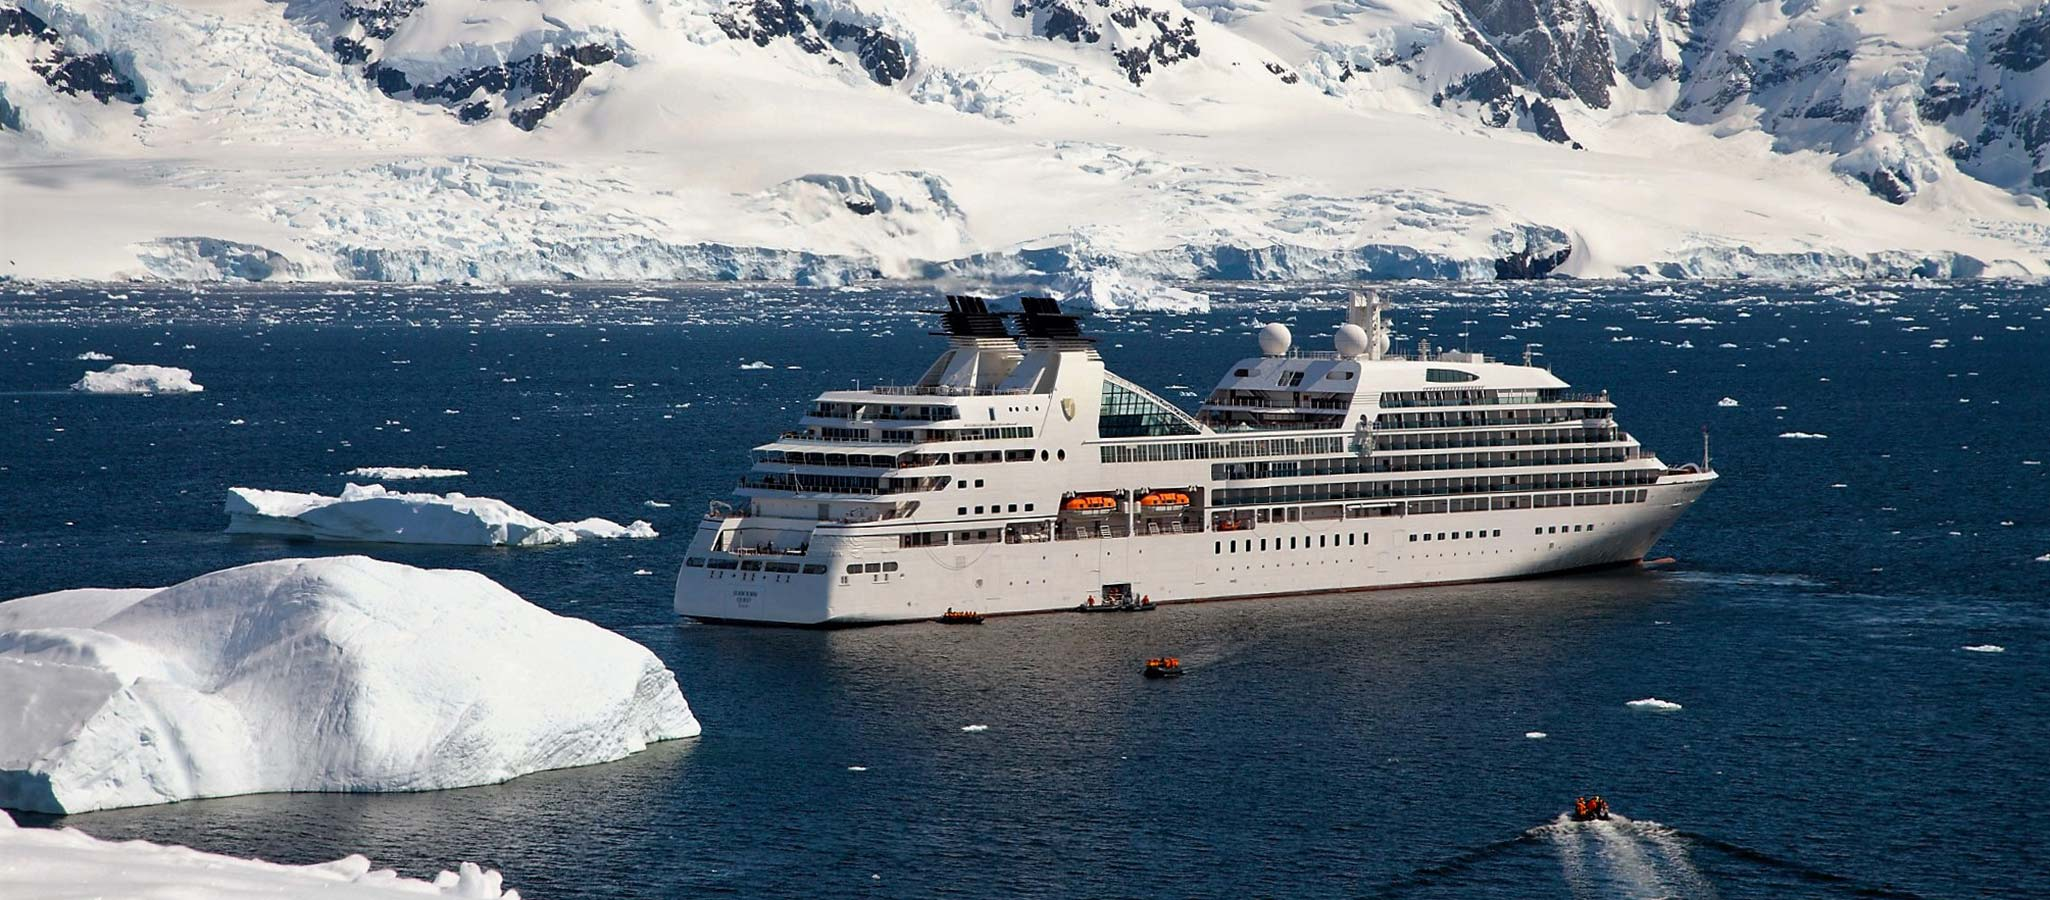 Cruise ships with the highest ice class also take course for the Arctic regions – a once-in-a-lifetime destination for events.